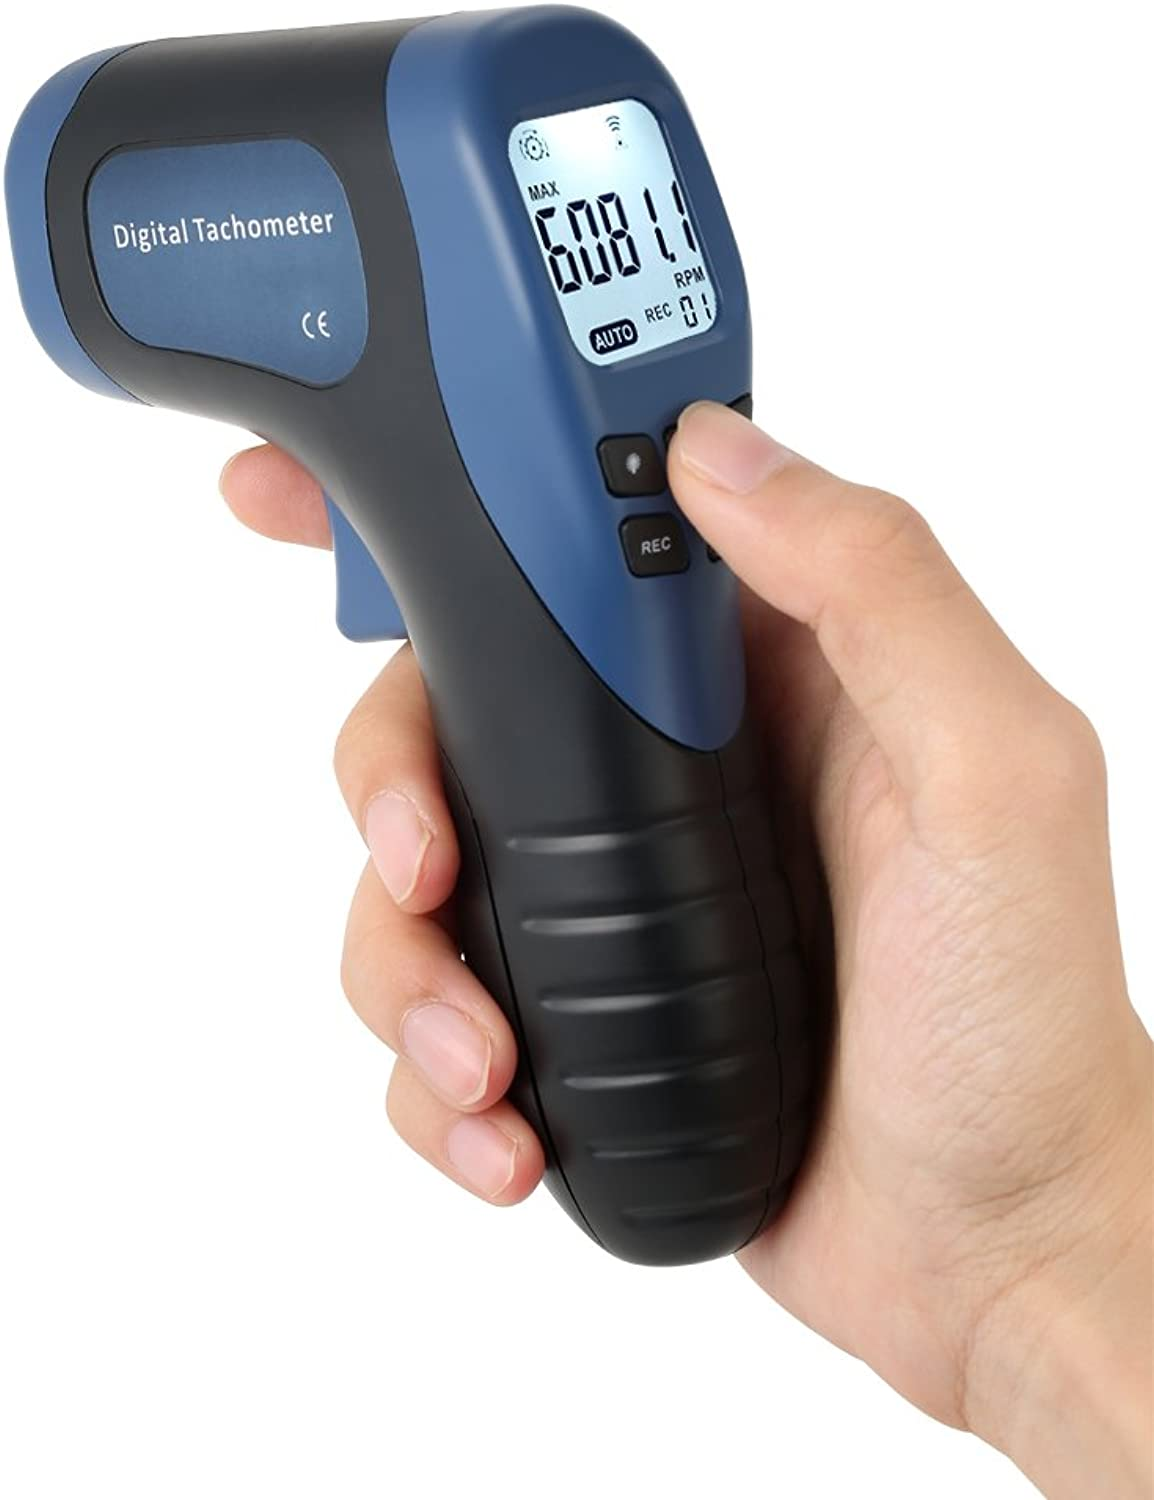 AMZVASO  Handheld Digital Photo Tachometer LCD RPM Meter Laser NonContact Tach Range 2.599999RPM Motor Speed Meter +1pc Reflective Tape